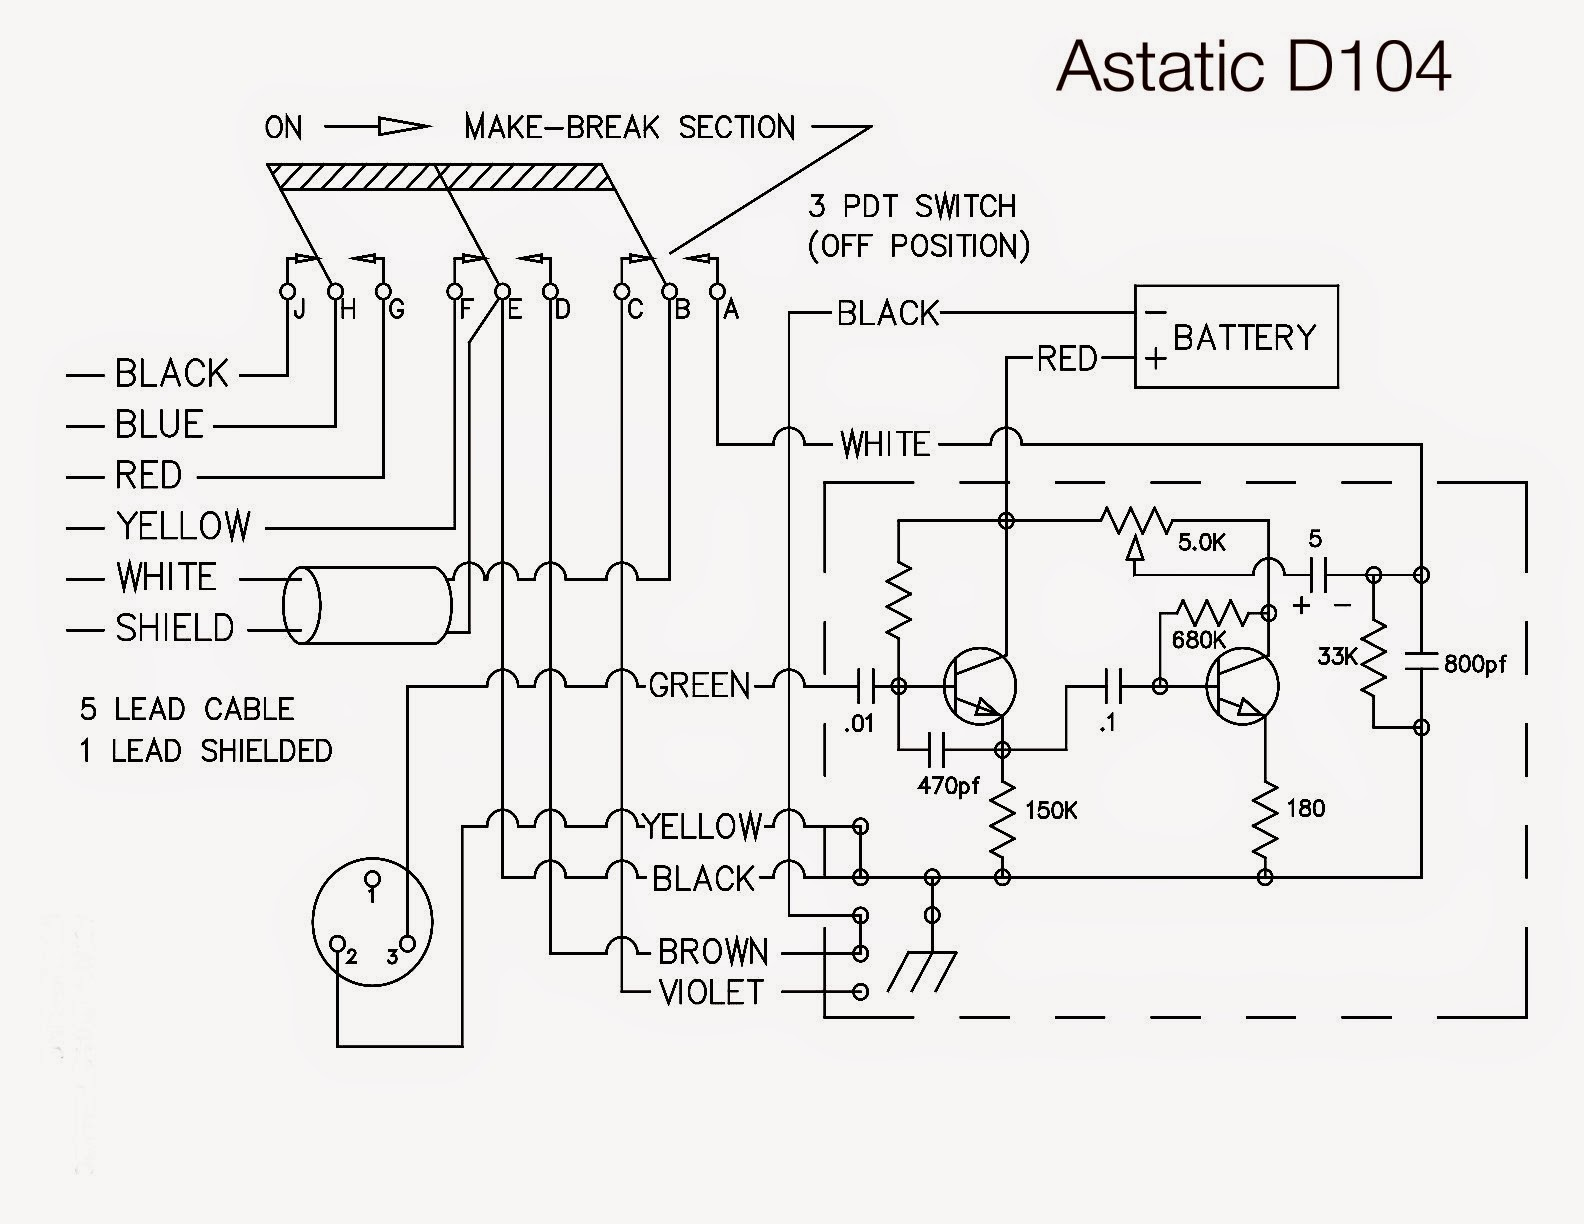 small resolution of astatic mic wiring diagram and then astatic d 104 microphone wiring diagram in addition astatic silver eagle wiring diagram as well as astatic echo board